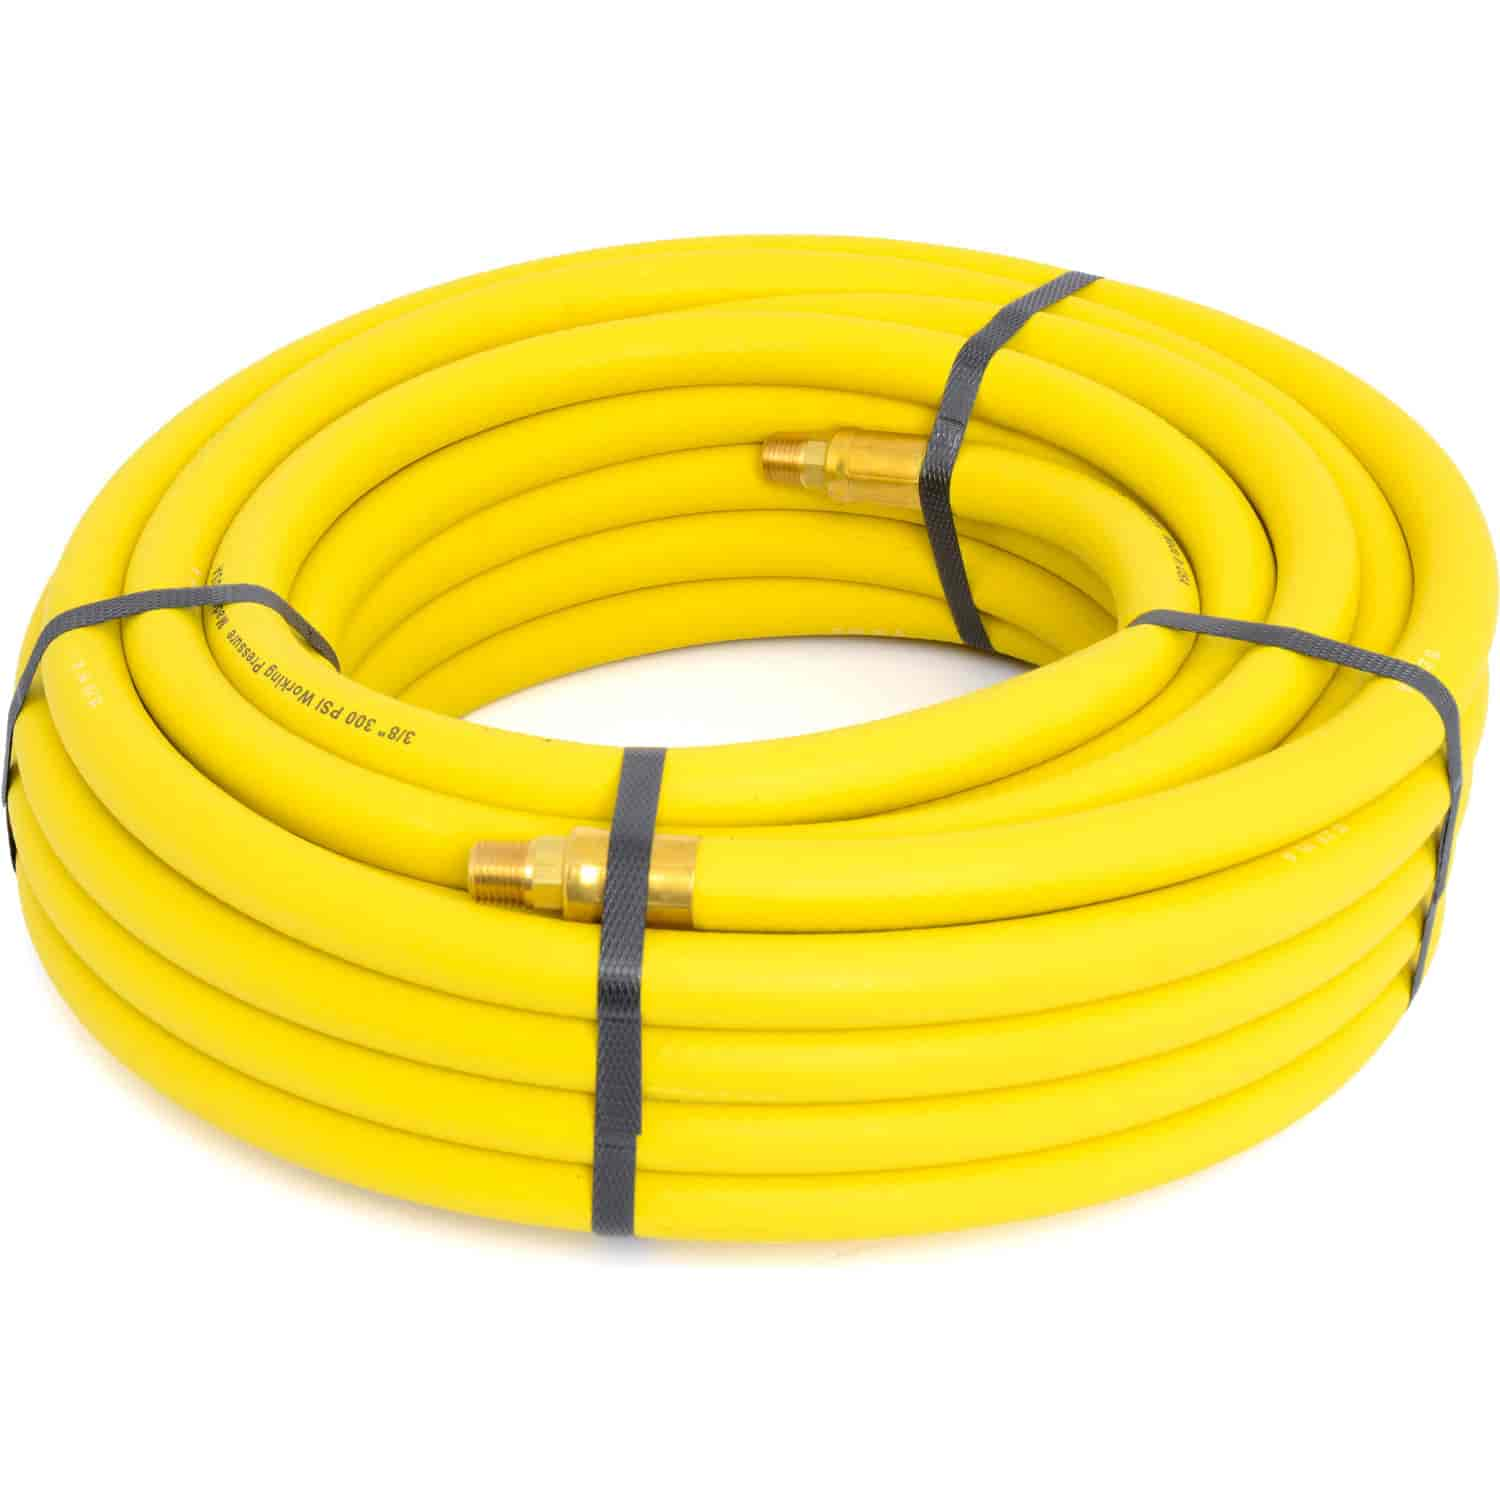 Goodyear Air Hose 12912